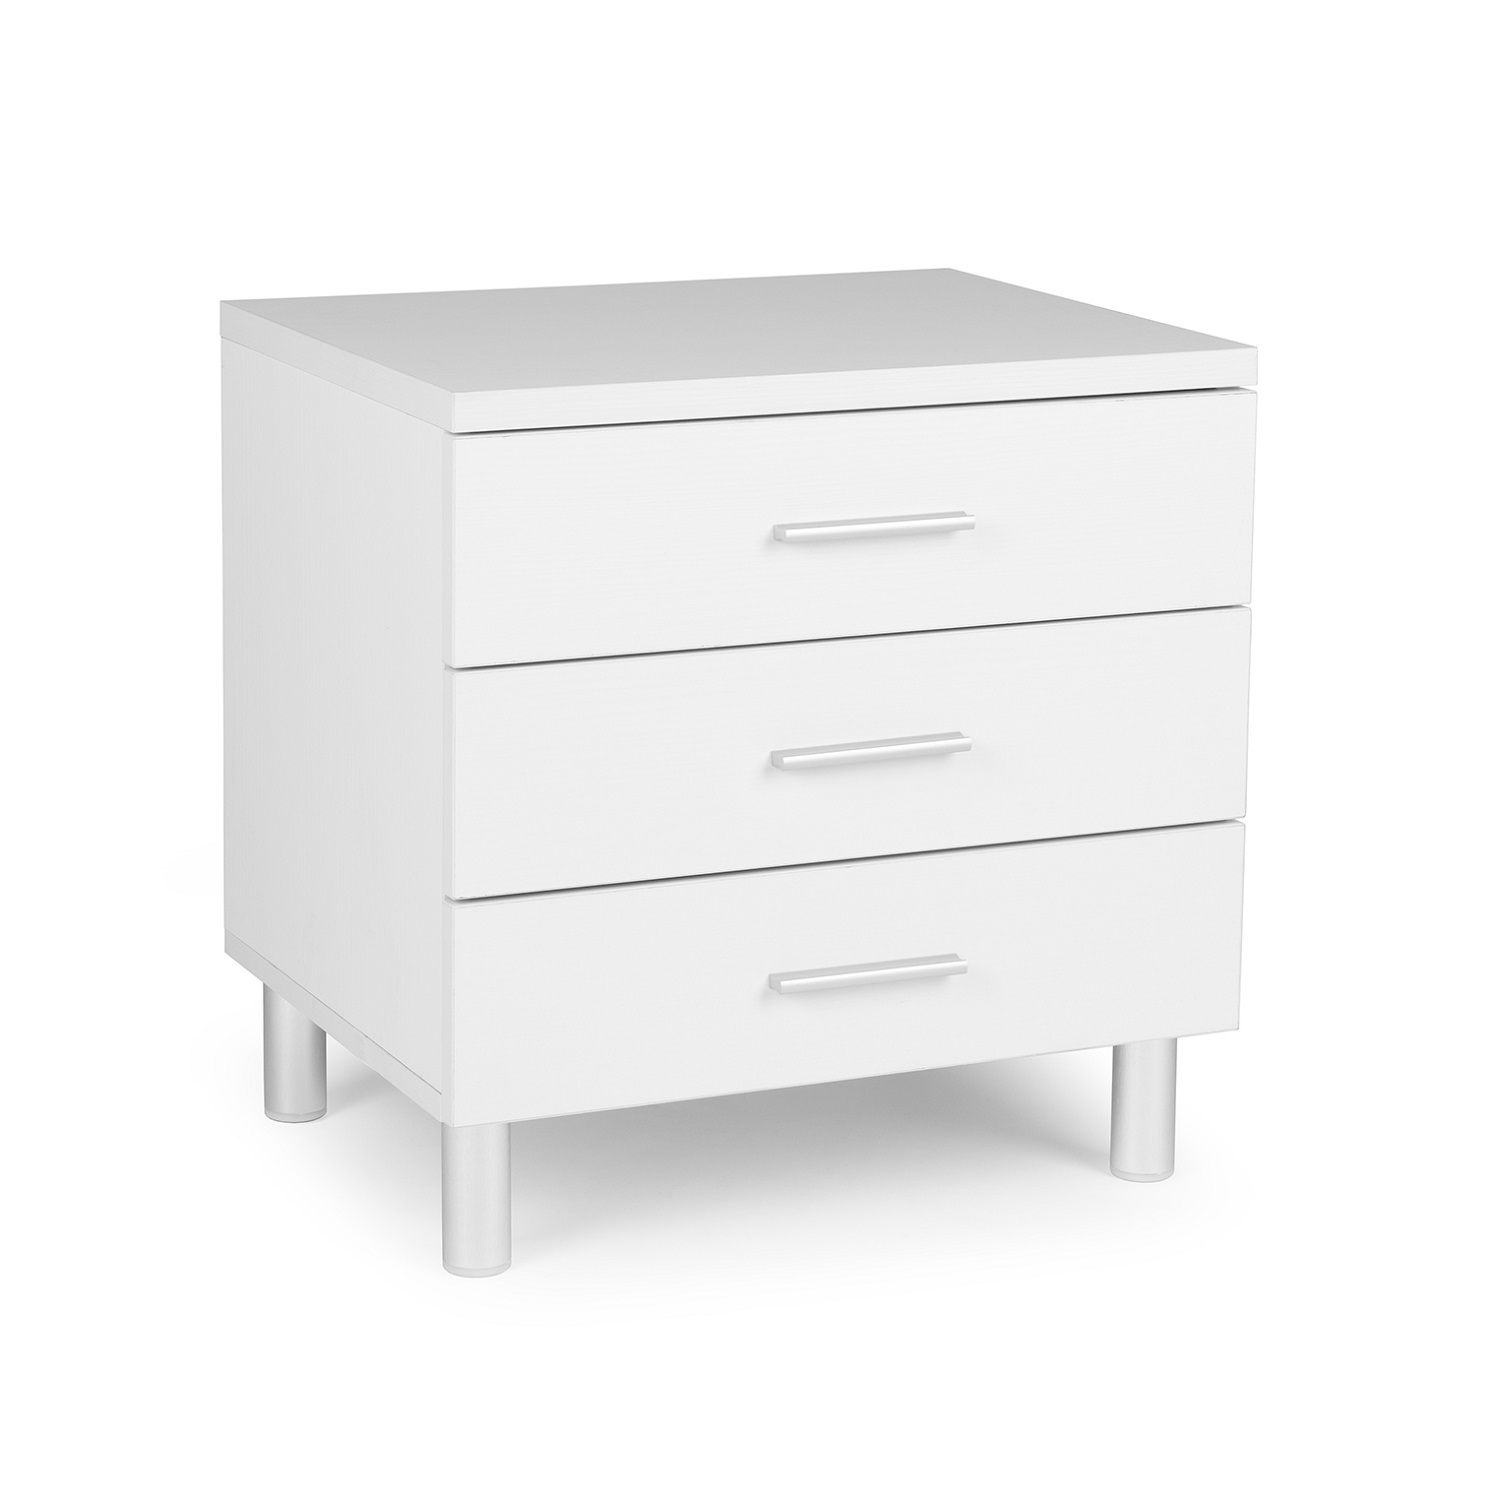 Bellmar Nightstand